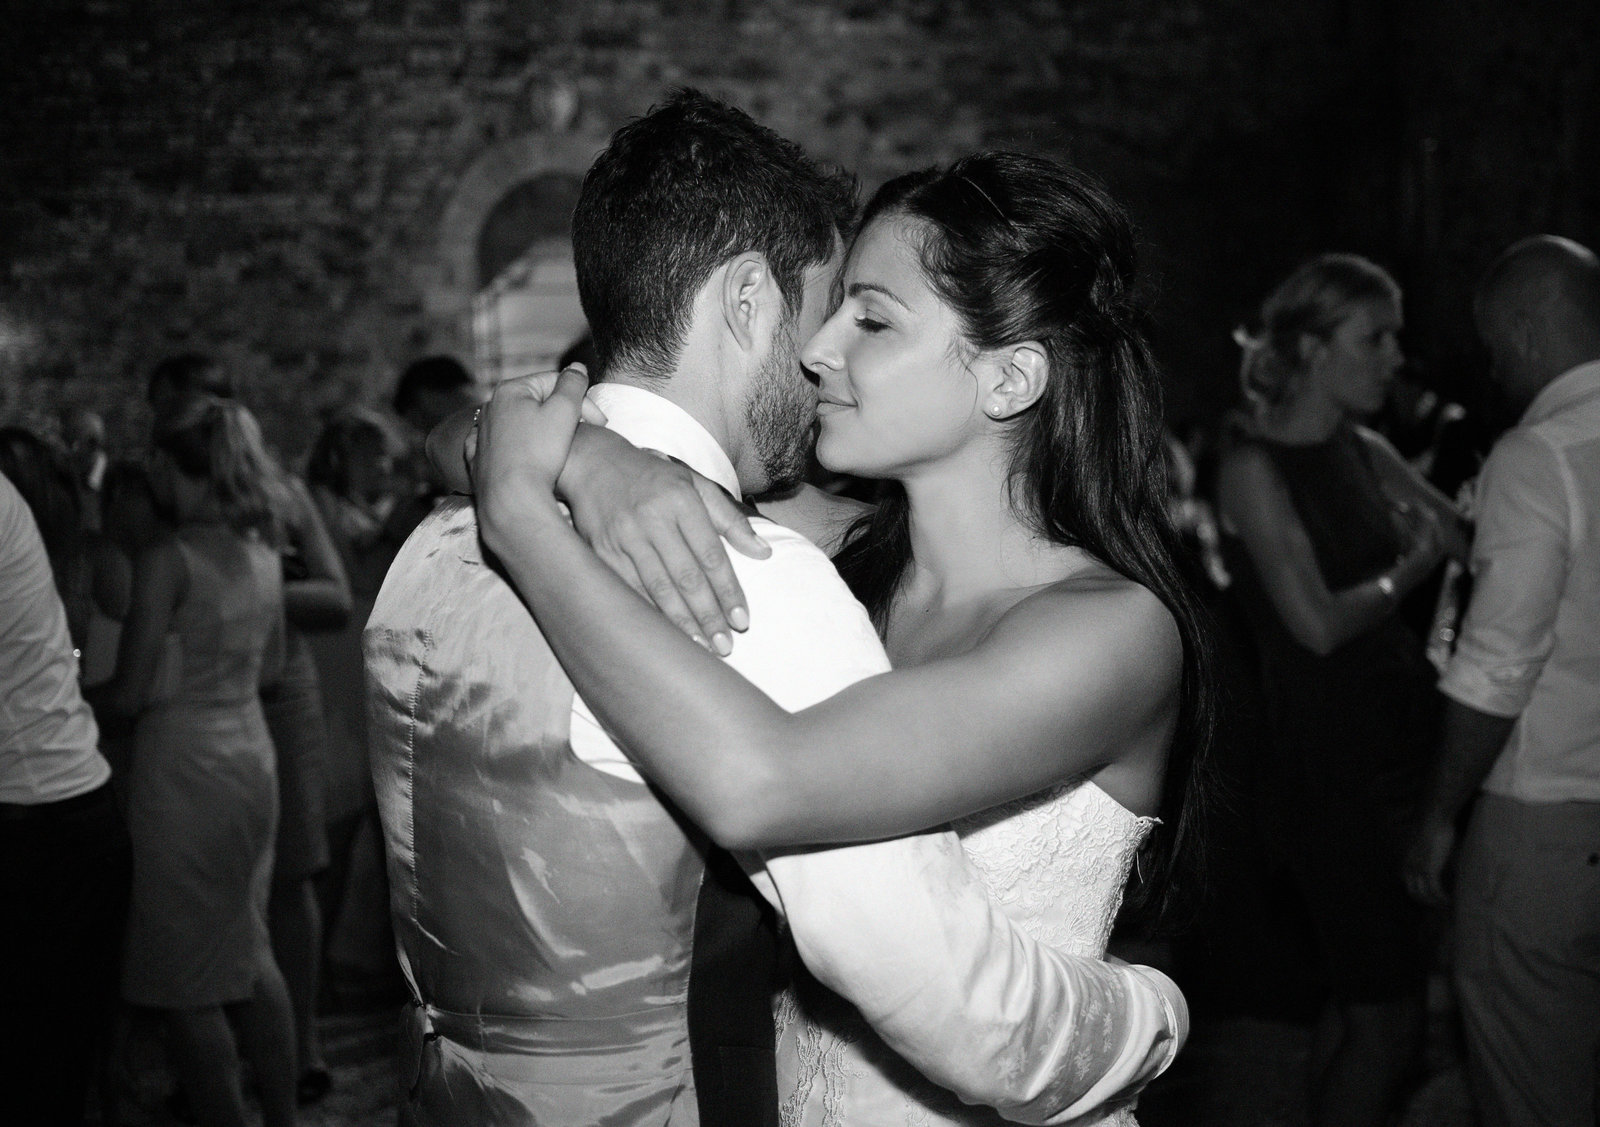 Embraced in the moment the bride and groom share an intimate embrace in this beautiful black and white destination wedding photo by Adorlee fo their first dance.